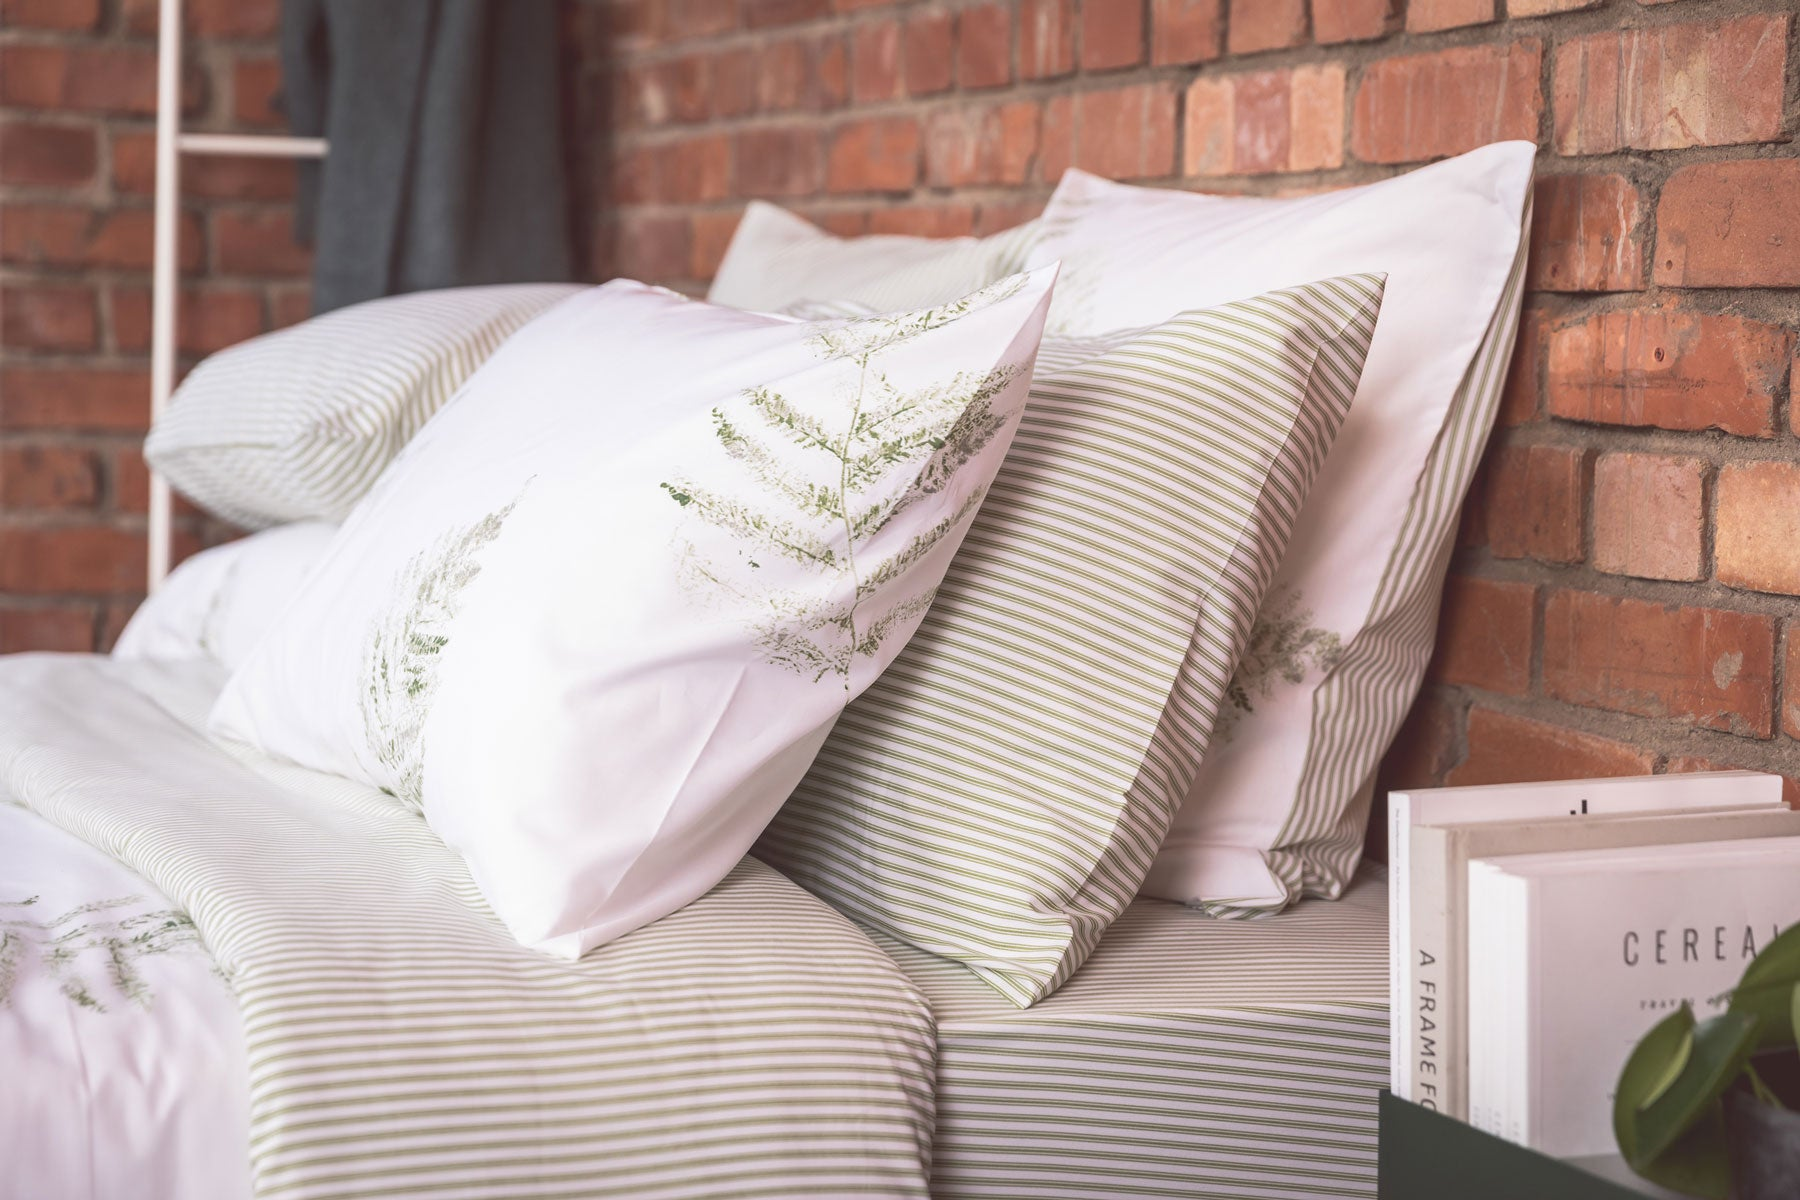 king set and design black covers ticking thread silver throughout cover striped brown cheap pink regard bedding charcoal sheets navy cinta full duvet blue cotton contemporary luxury comforter grey queen solid of with stripe white to duvets gray percale prepare sets size